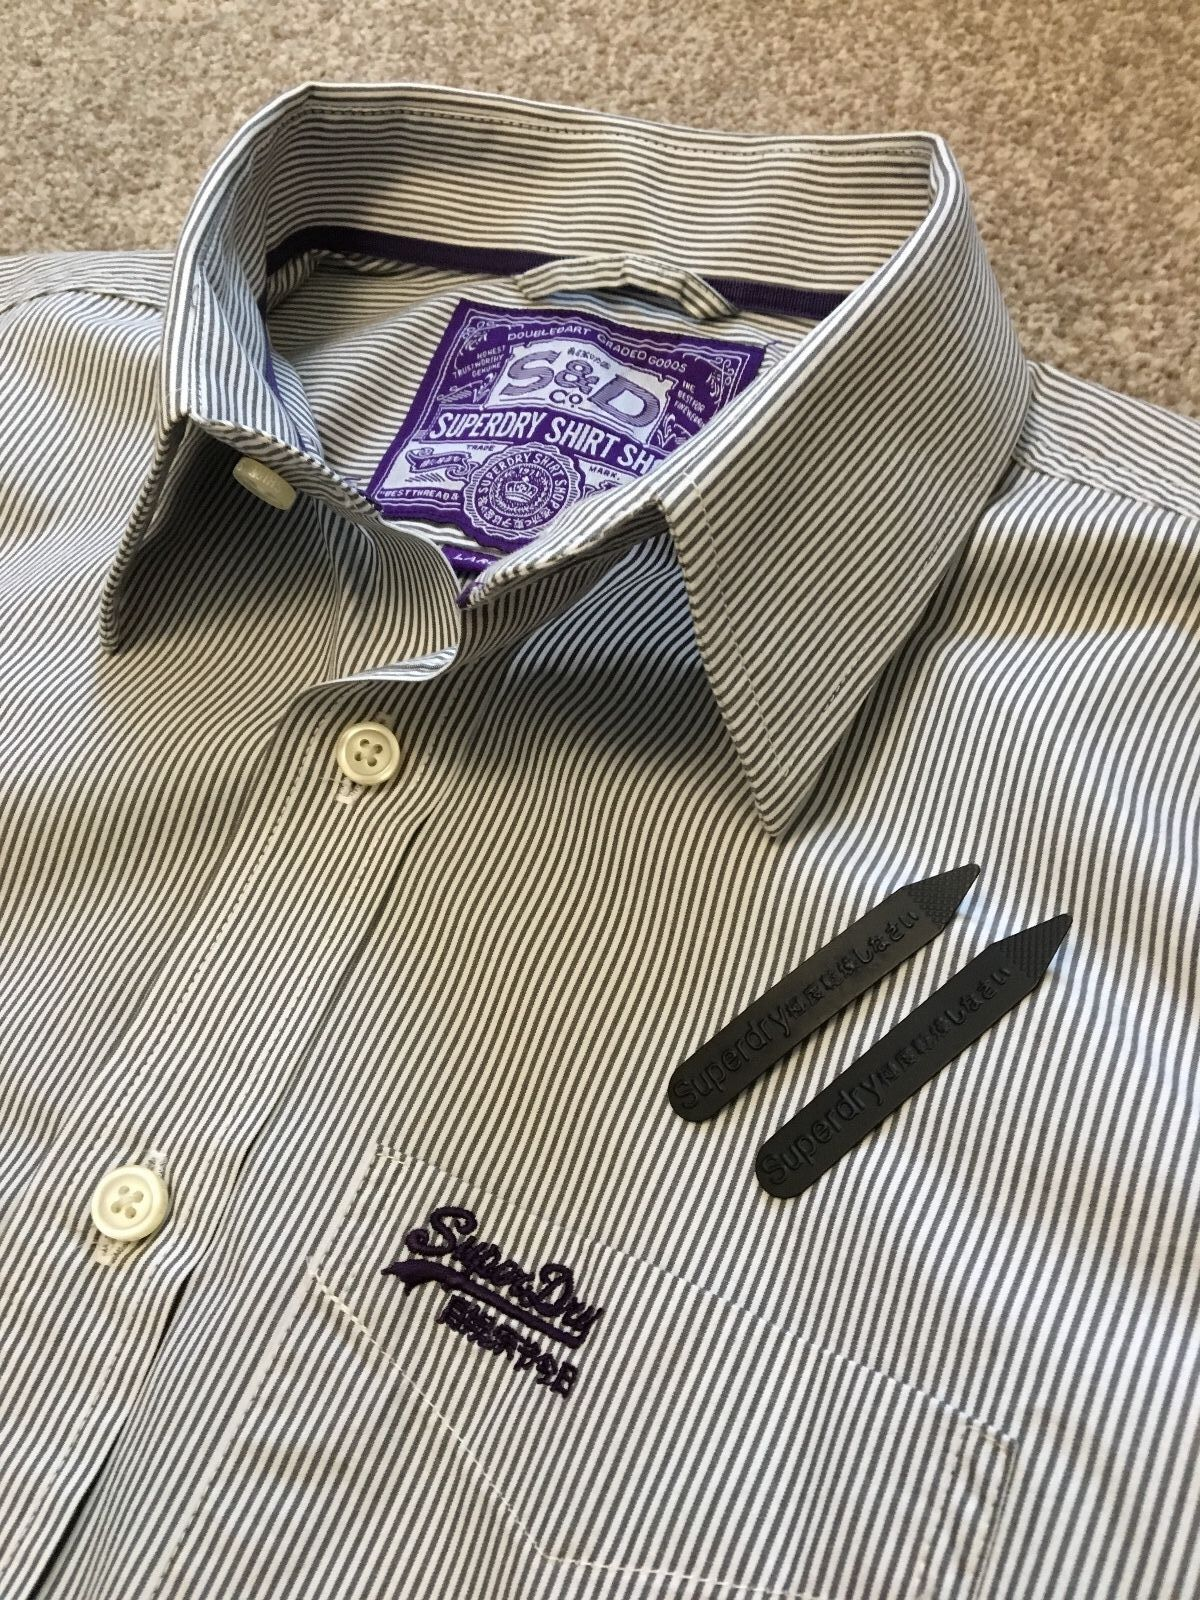 WORN ONCE SUPERDRY BENGAL STRIPE SHIRT WITH PURPLE DETAIL L LARGE COST